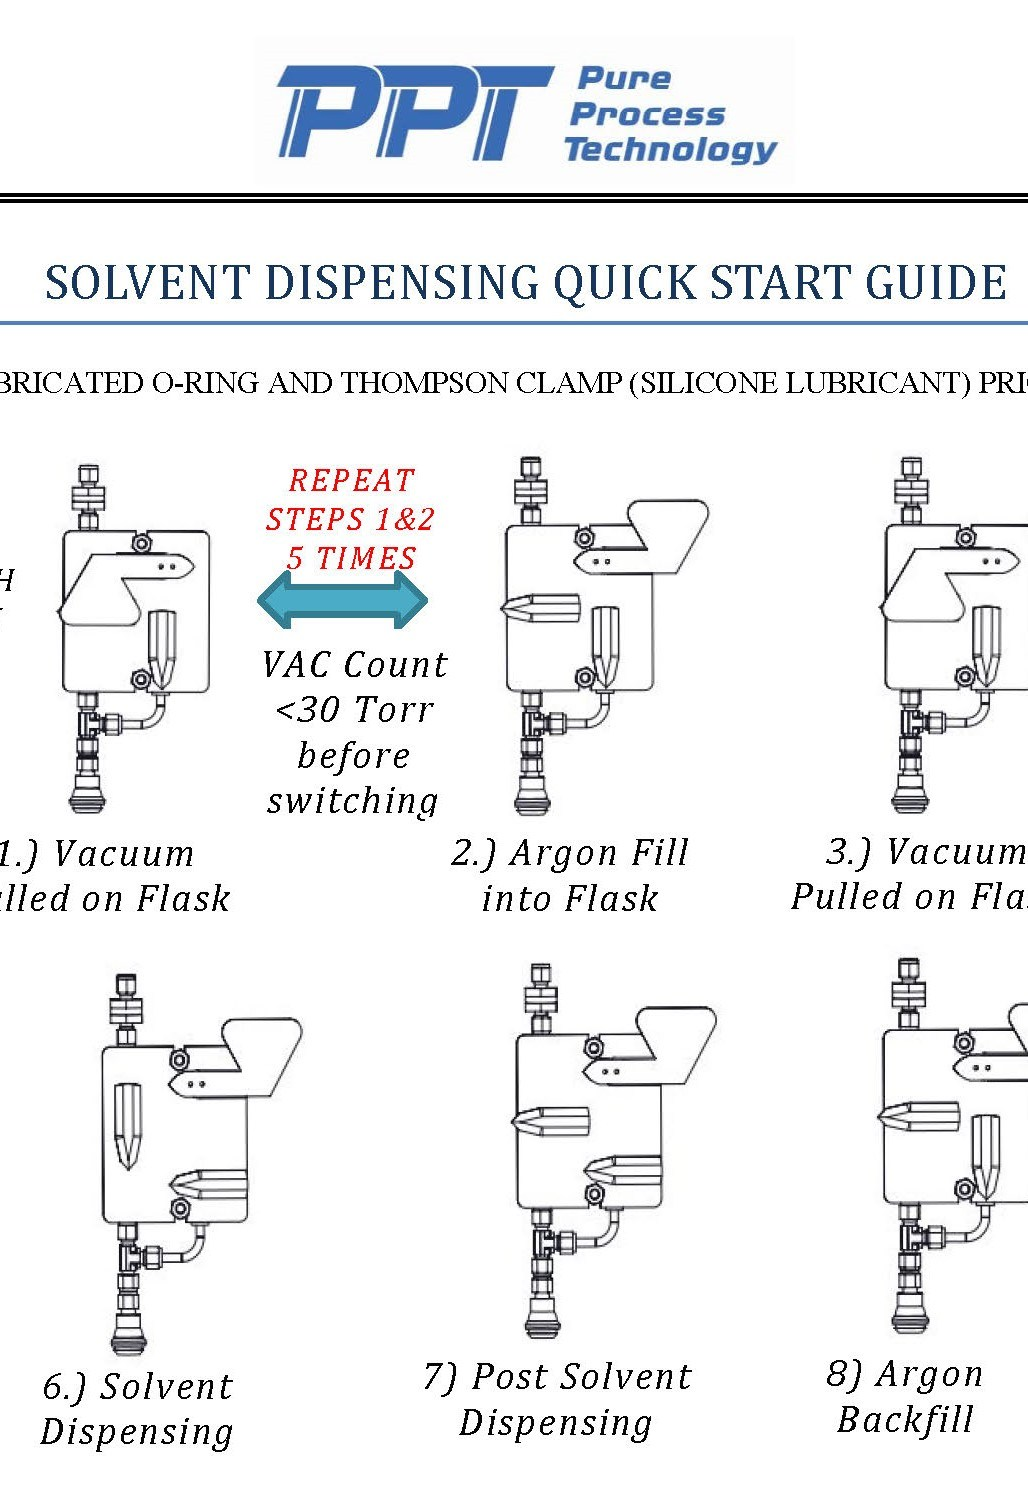 Solvent Dispensing Quick Guide